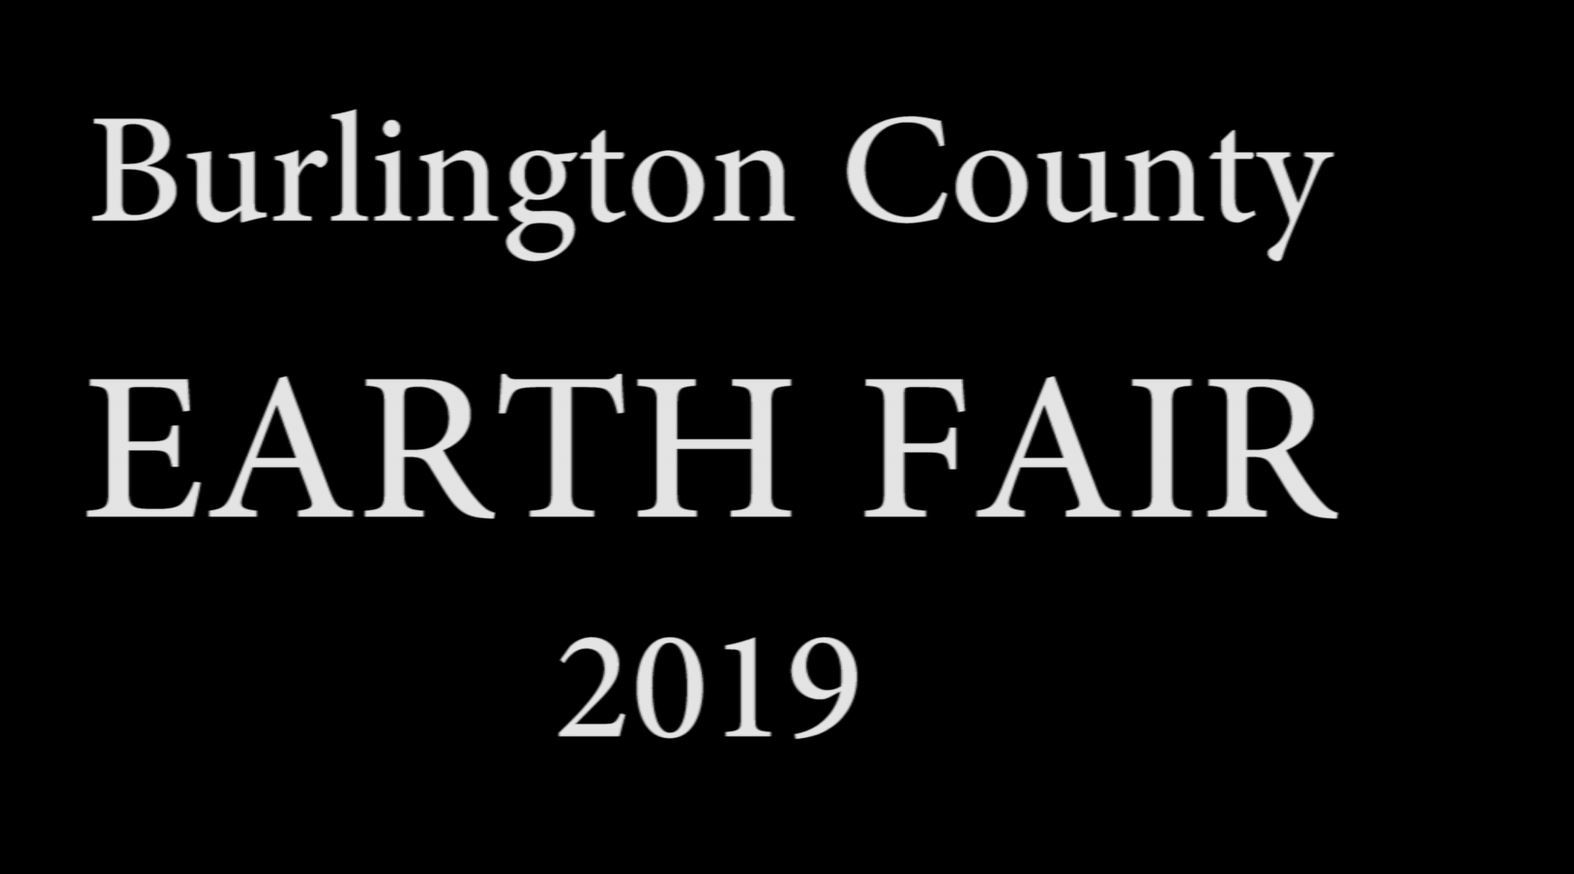 Earth Fair June 9